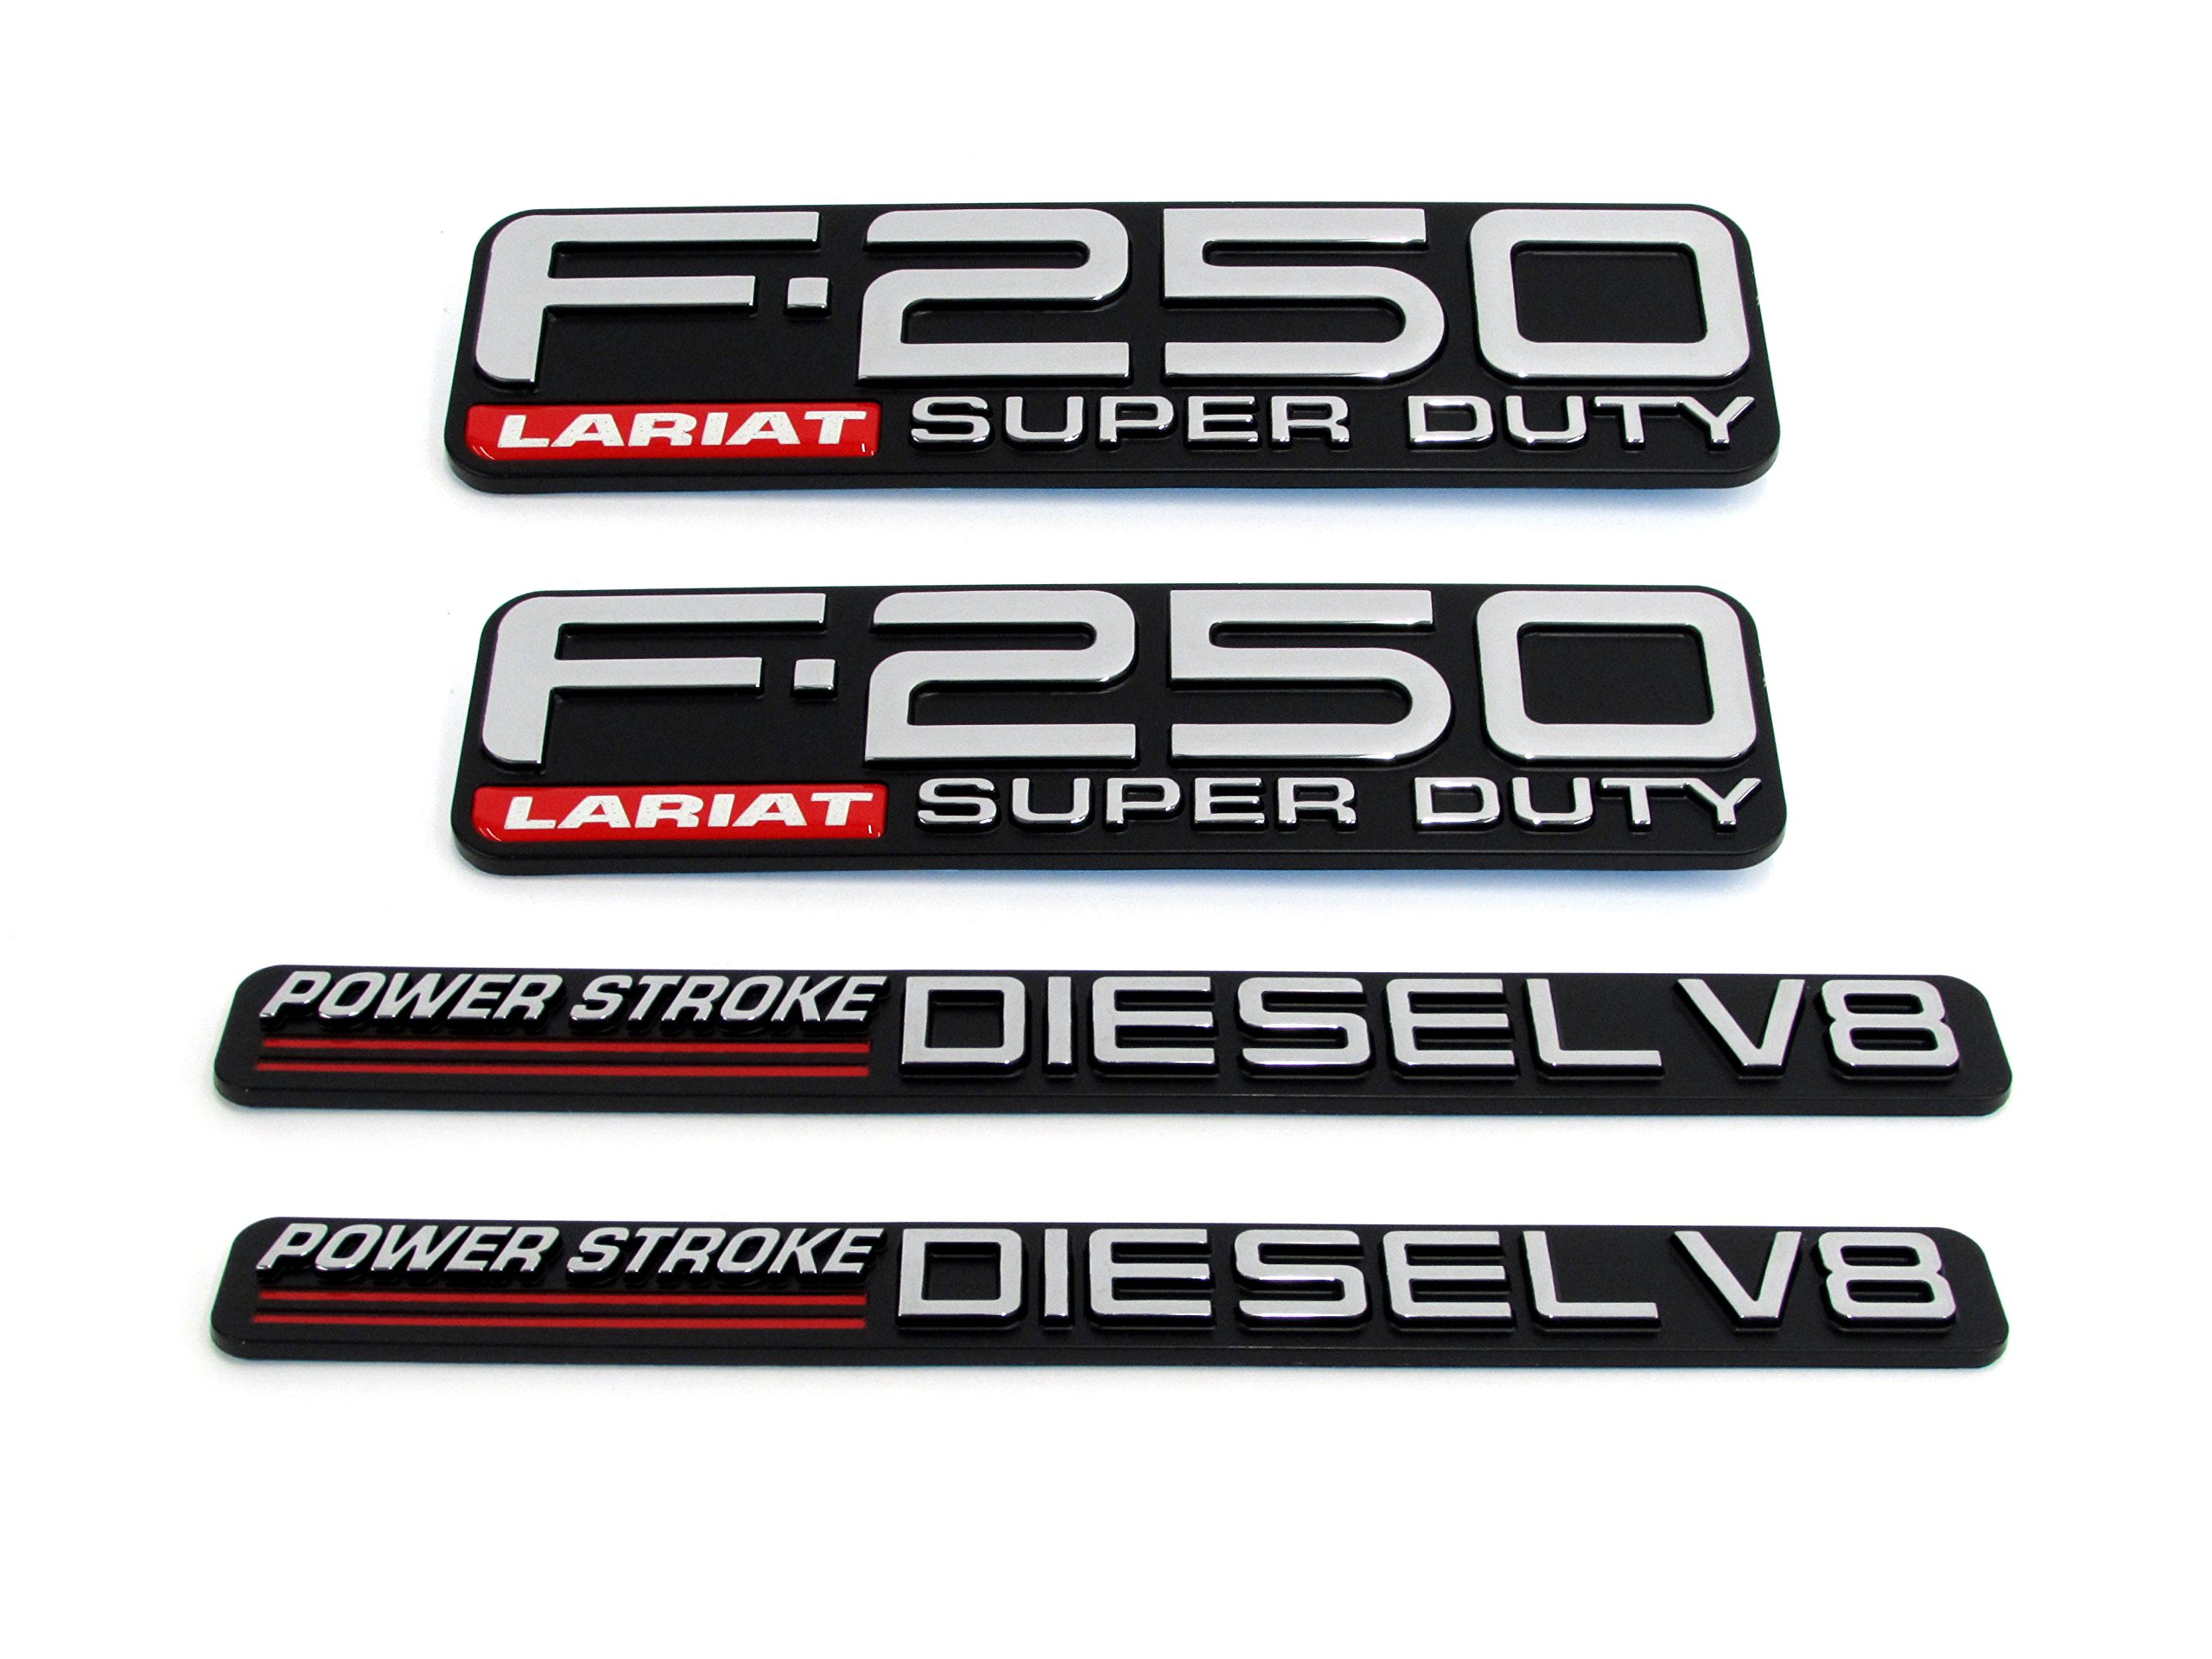 1999-2000 Ford F-250 Lariat Super Duty Powerstroke Diesel V8 Fender Emblems OEM by Ford